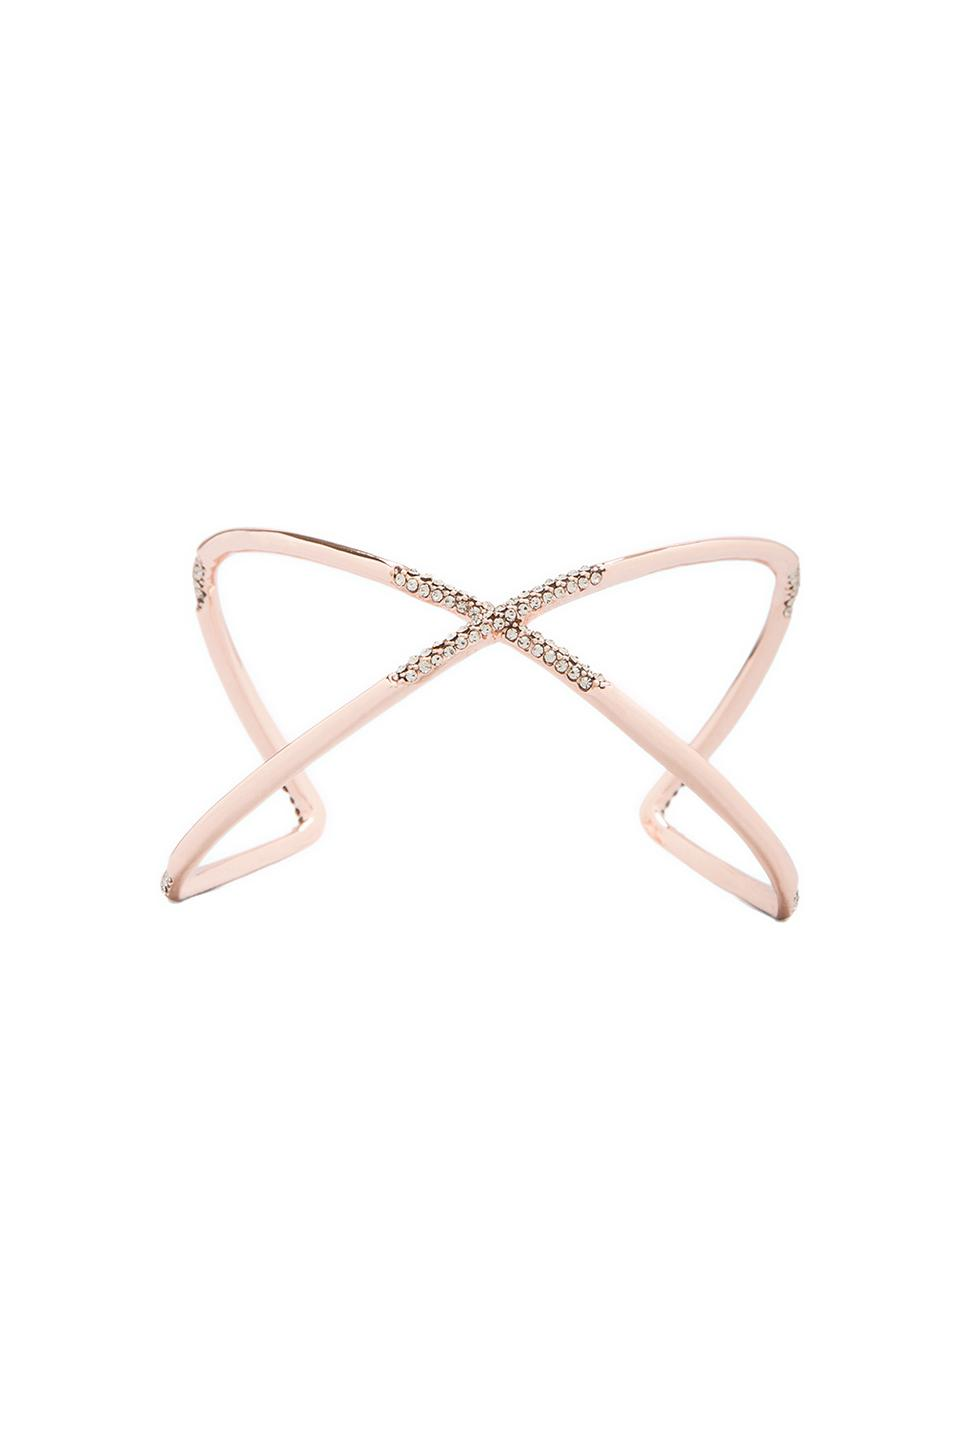 House of Harlow Sound Waves Cuff in Rose Gold